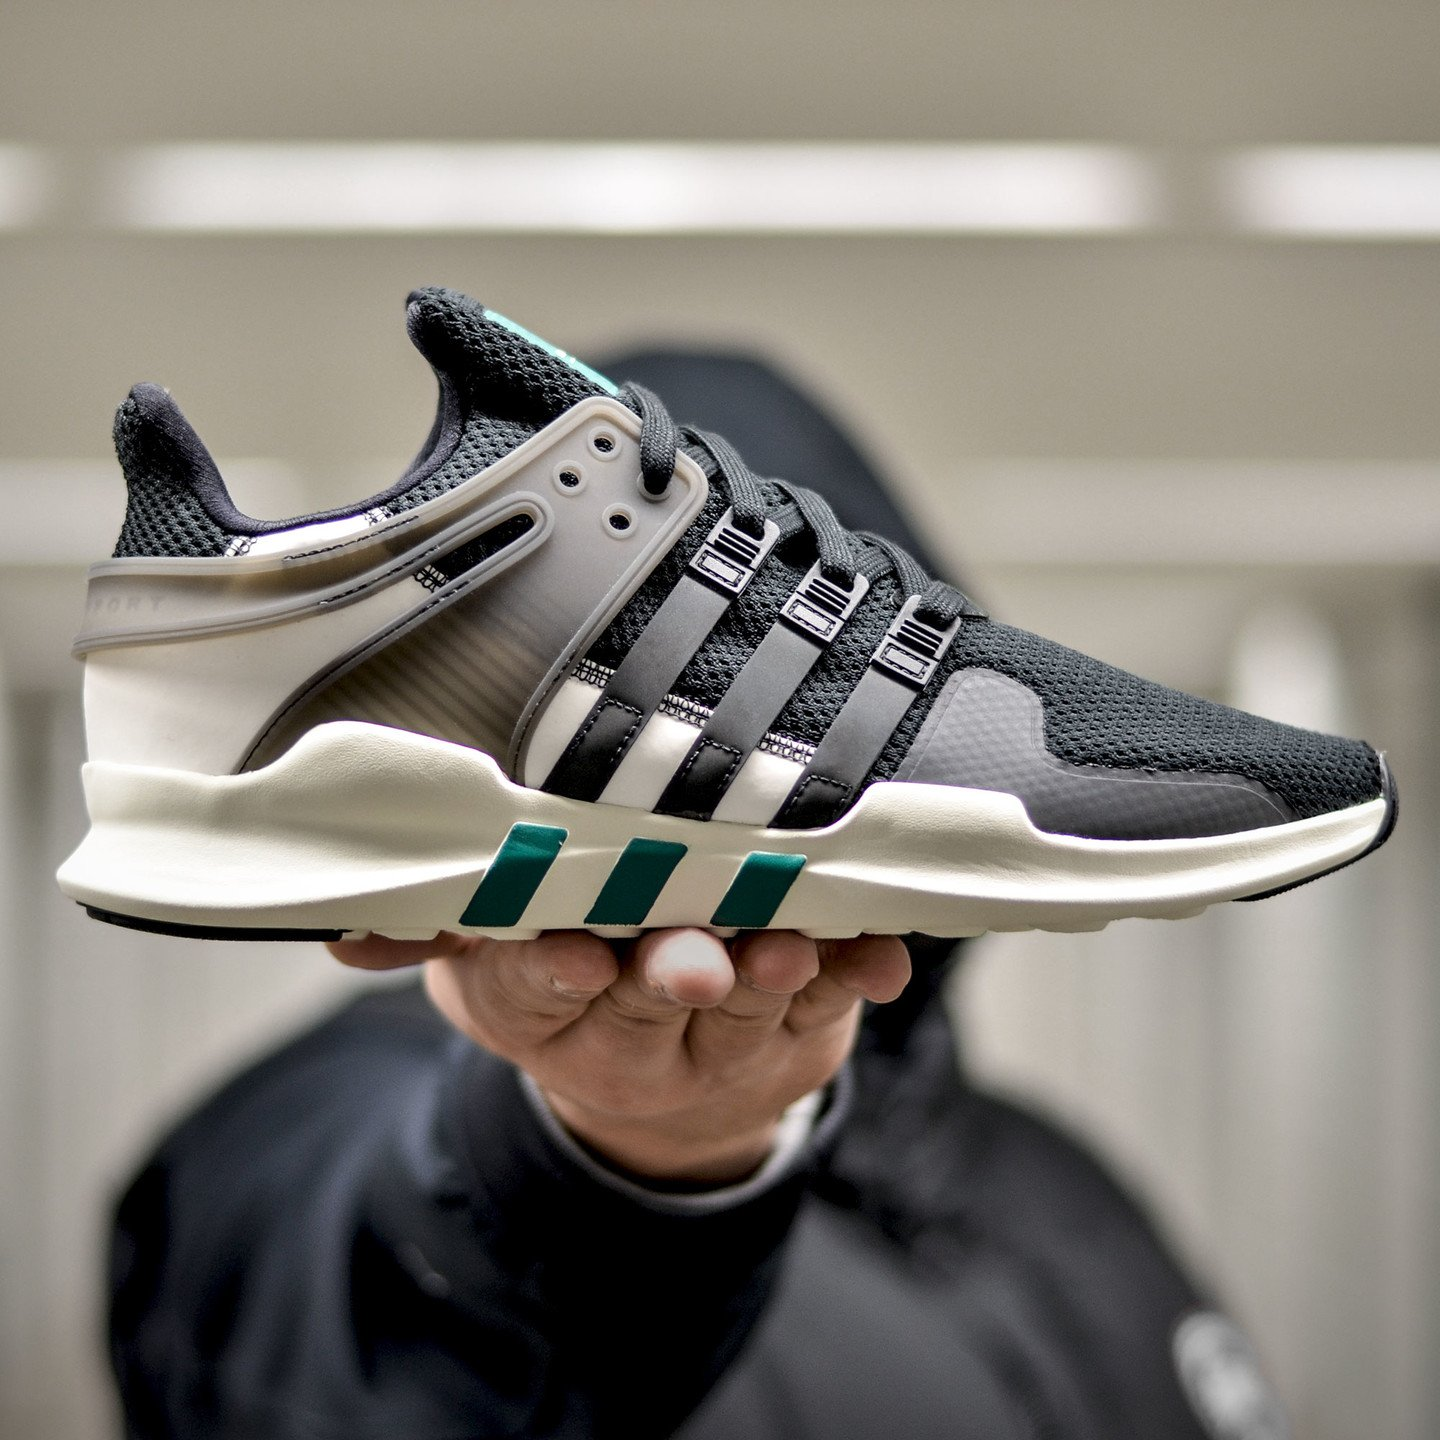 Adidas EQT Support ADV 'Reflective Pack' Core Black / Sub Green BA8321-46